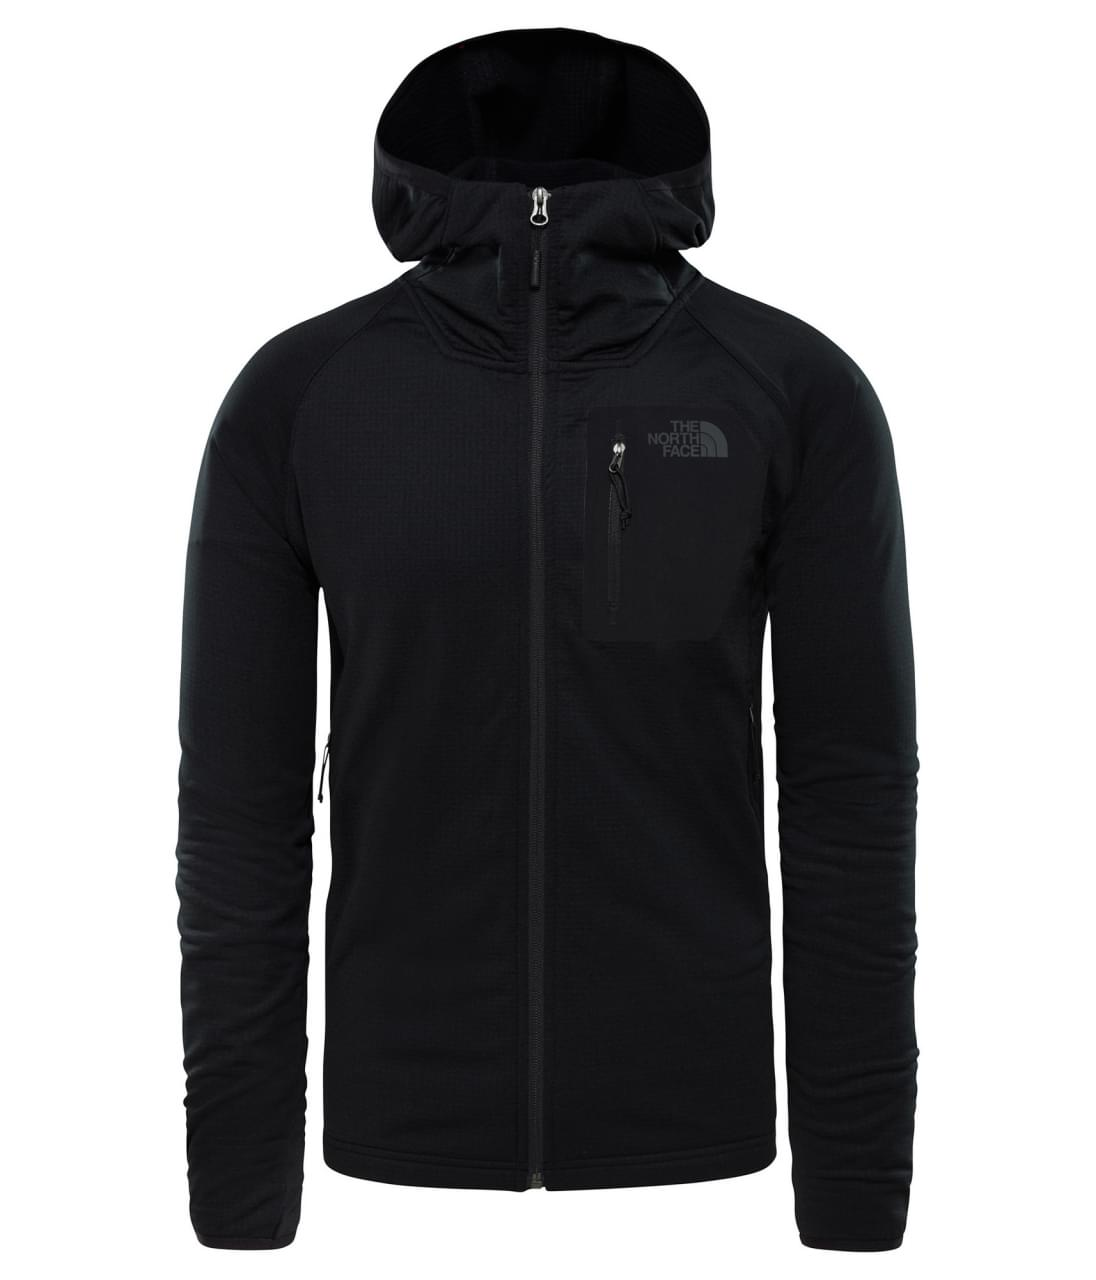 The North Face Borod Fleece Jacket Heren Truien en vesten > Fleece jacket > Truien en vesten